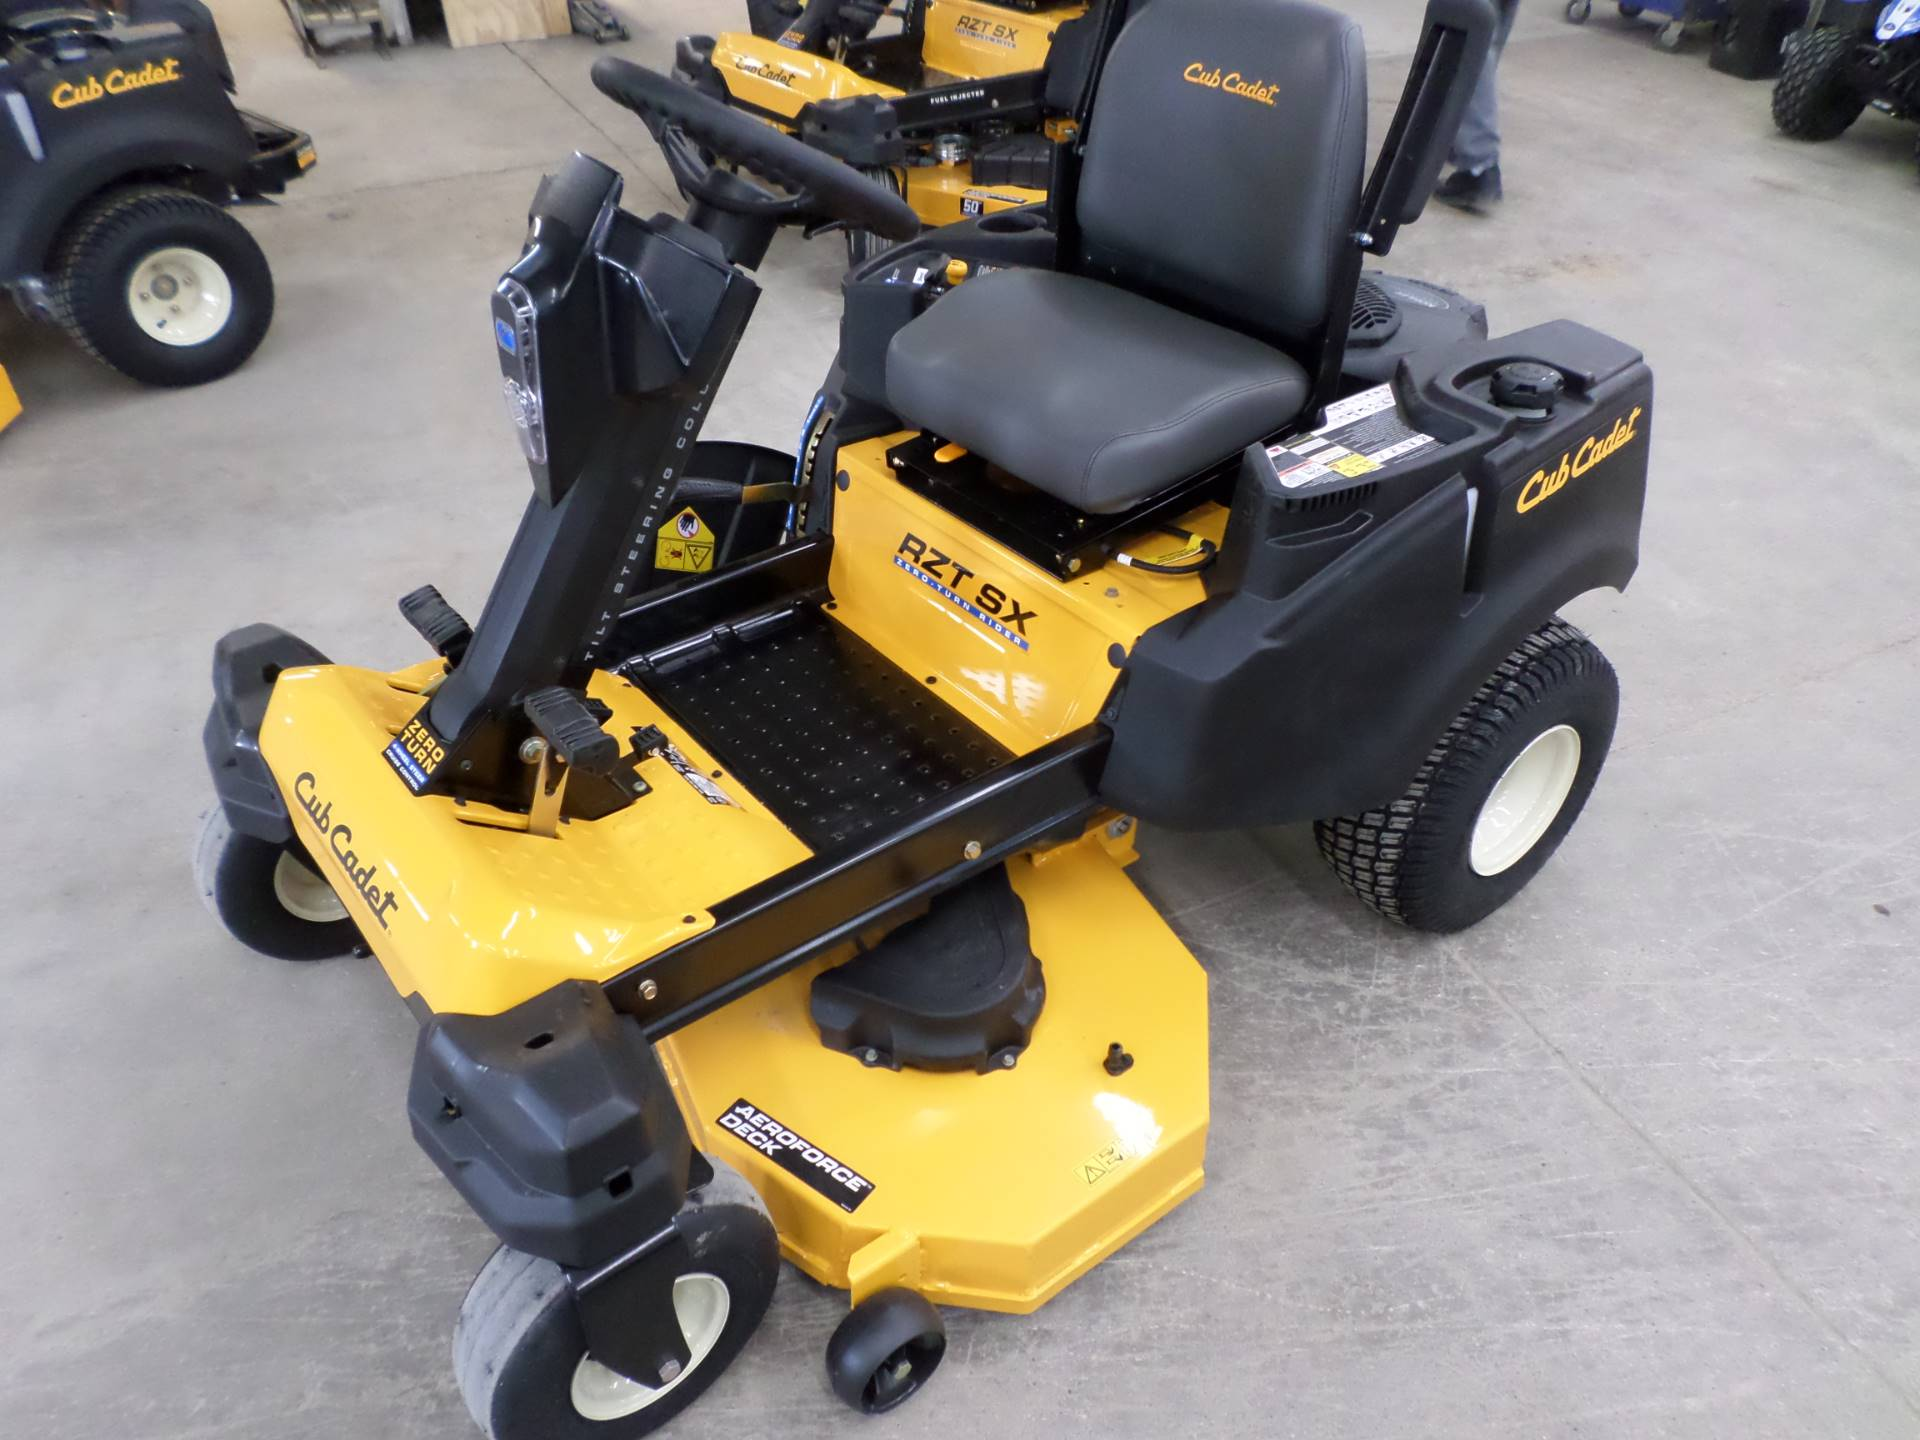 2019 Cub Cadet RZT SX 46 in. Cub Cadet 679 cc in Lake Mills, Iowa - Photo 1